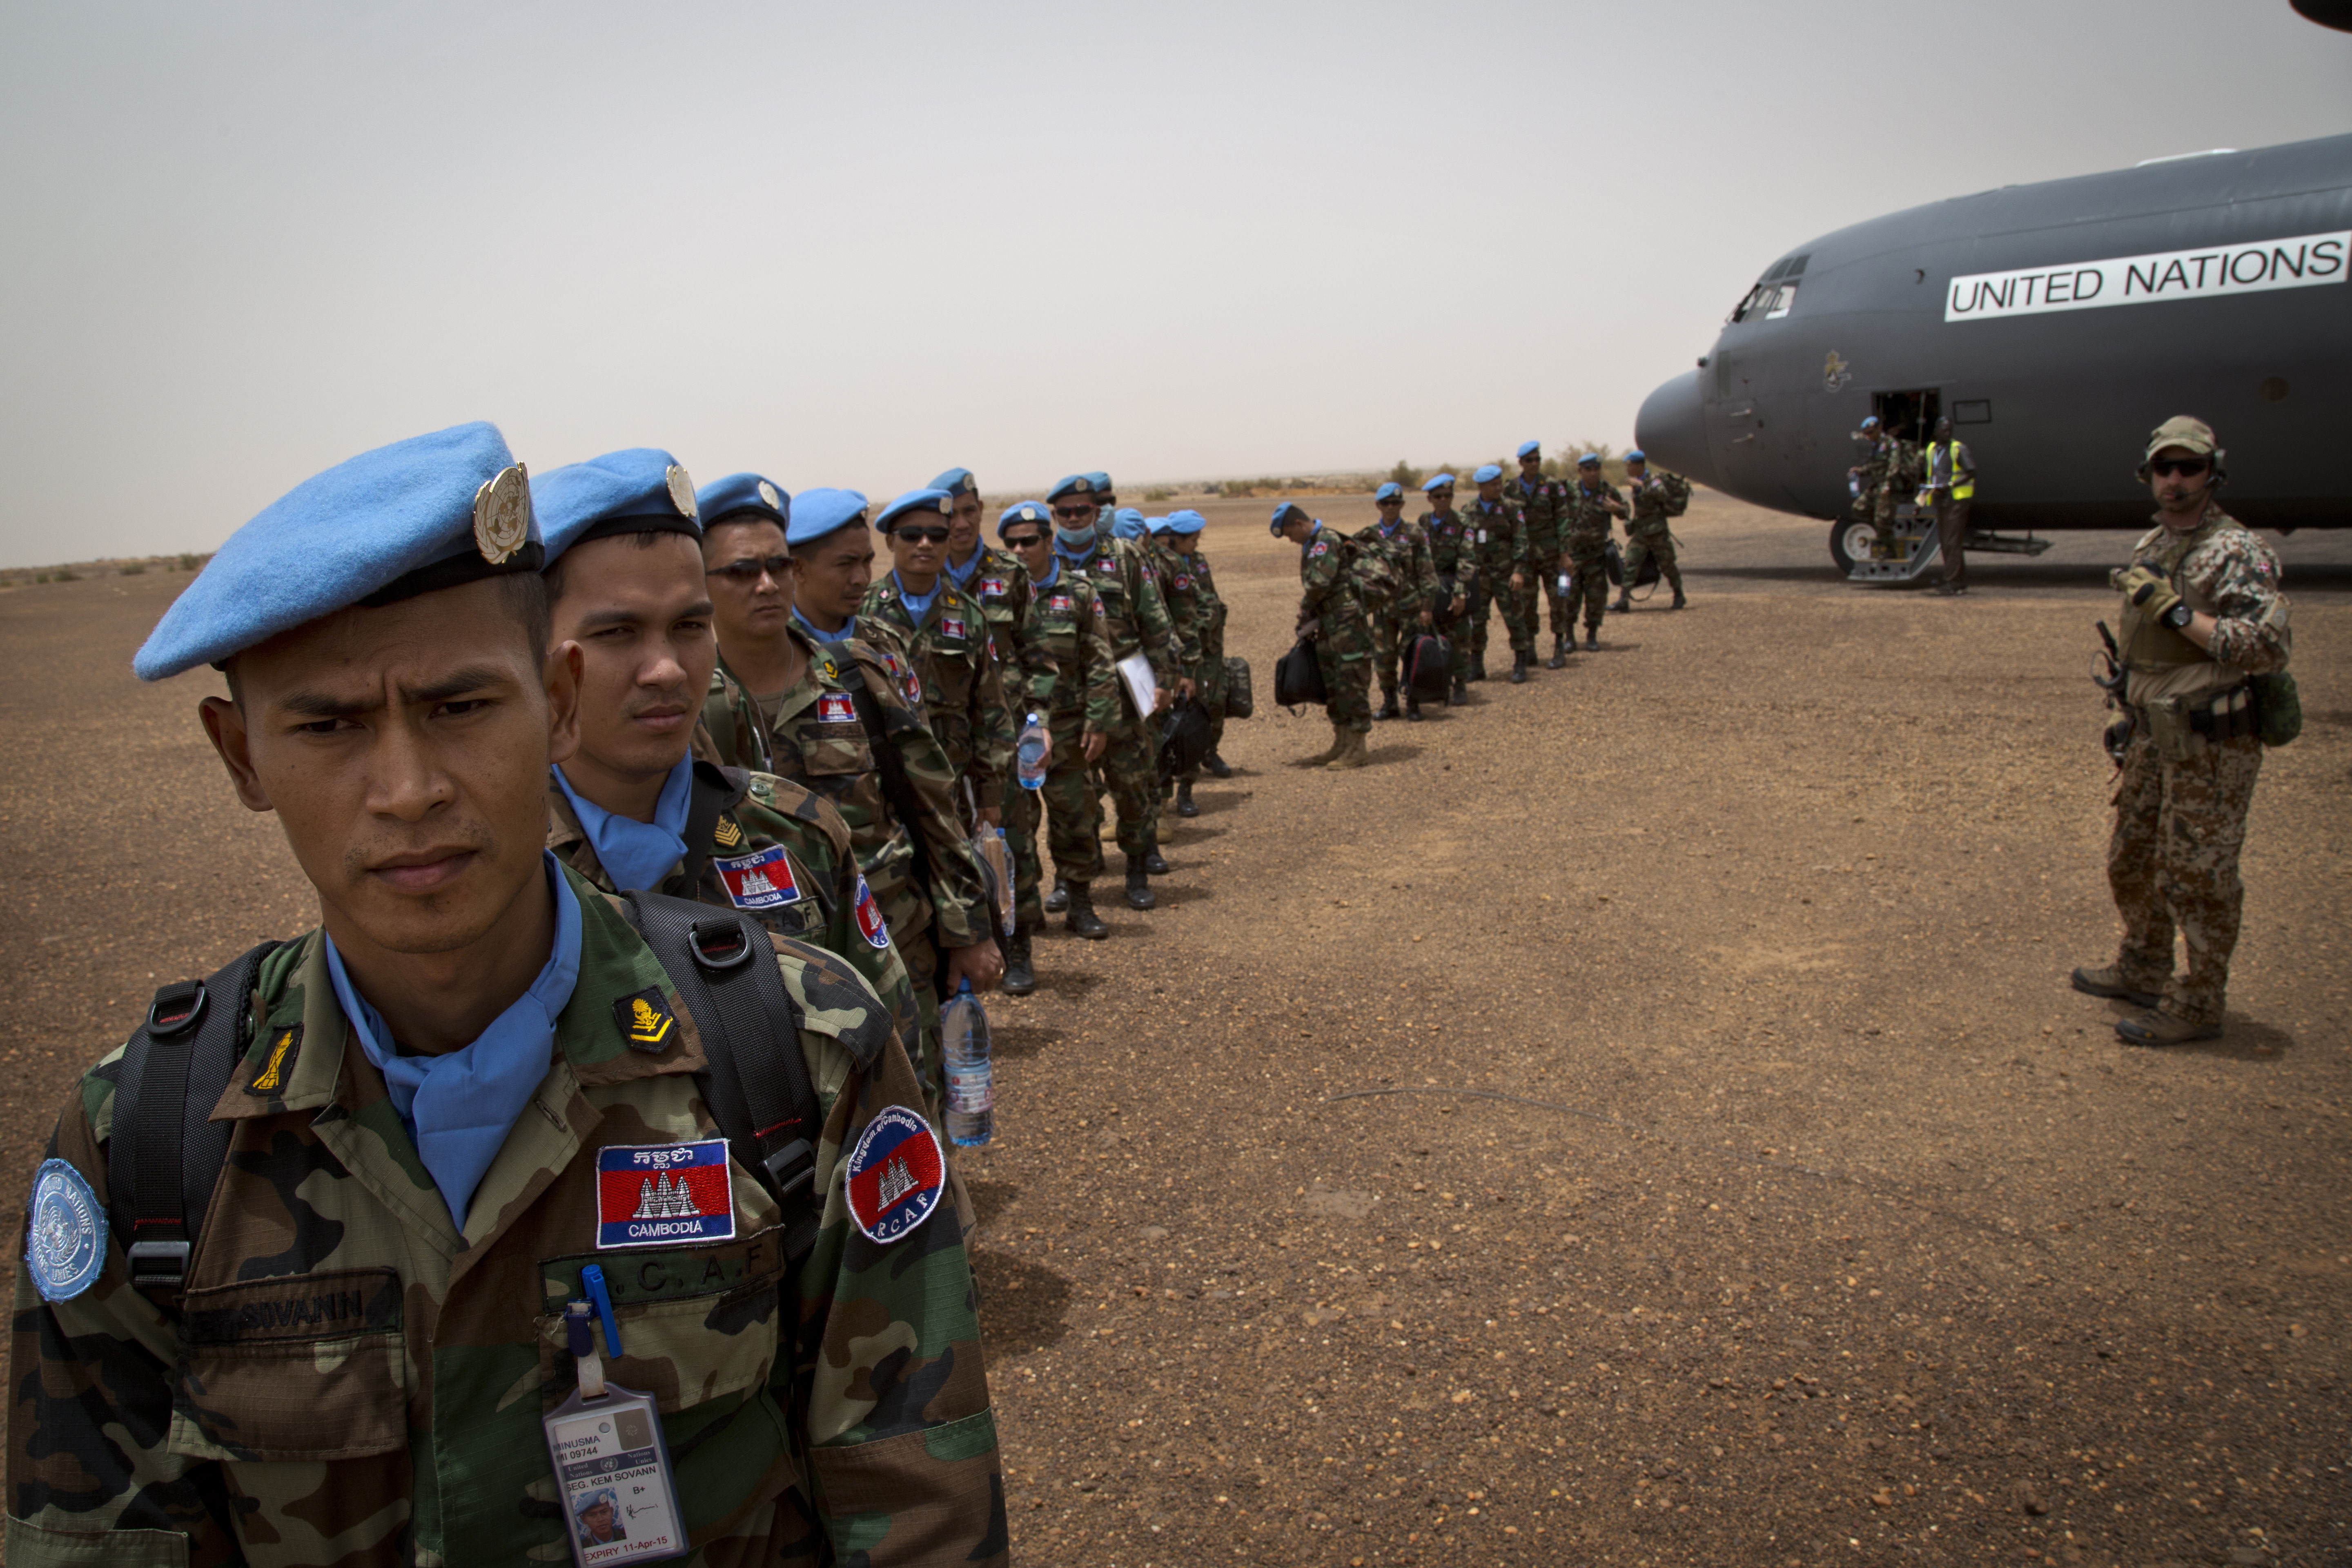 Cambodian peacekeepers deployed to Northern Mali. © United Nations Photo - Flickr